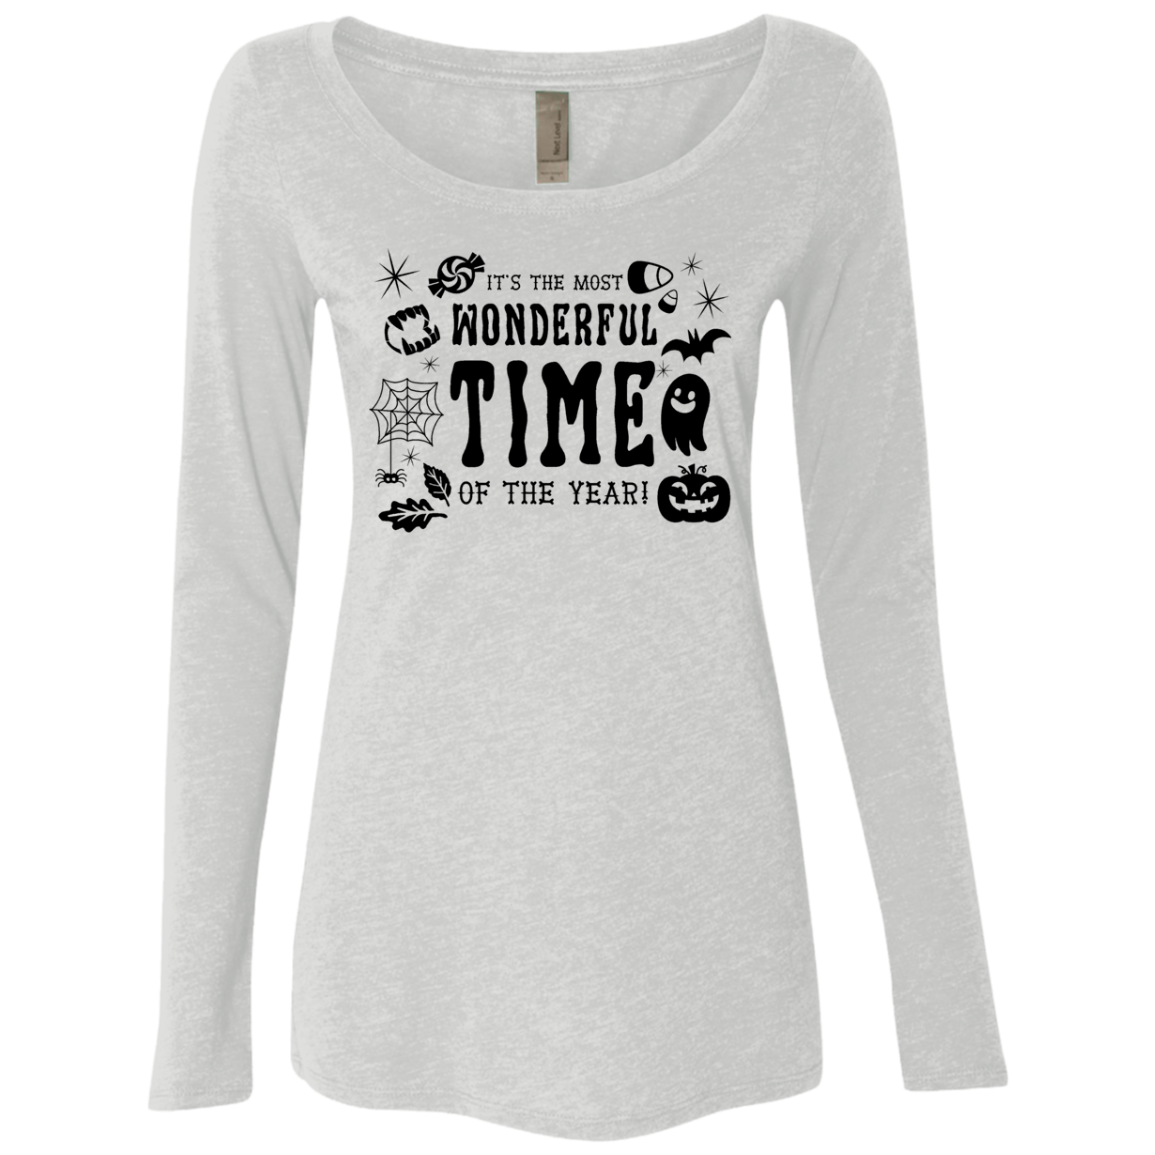 It's The Most Wonderful Time Of The Year Spooky Women's Long Sleeve Tee